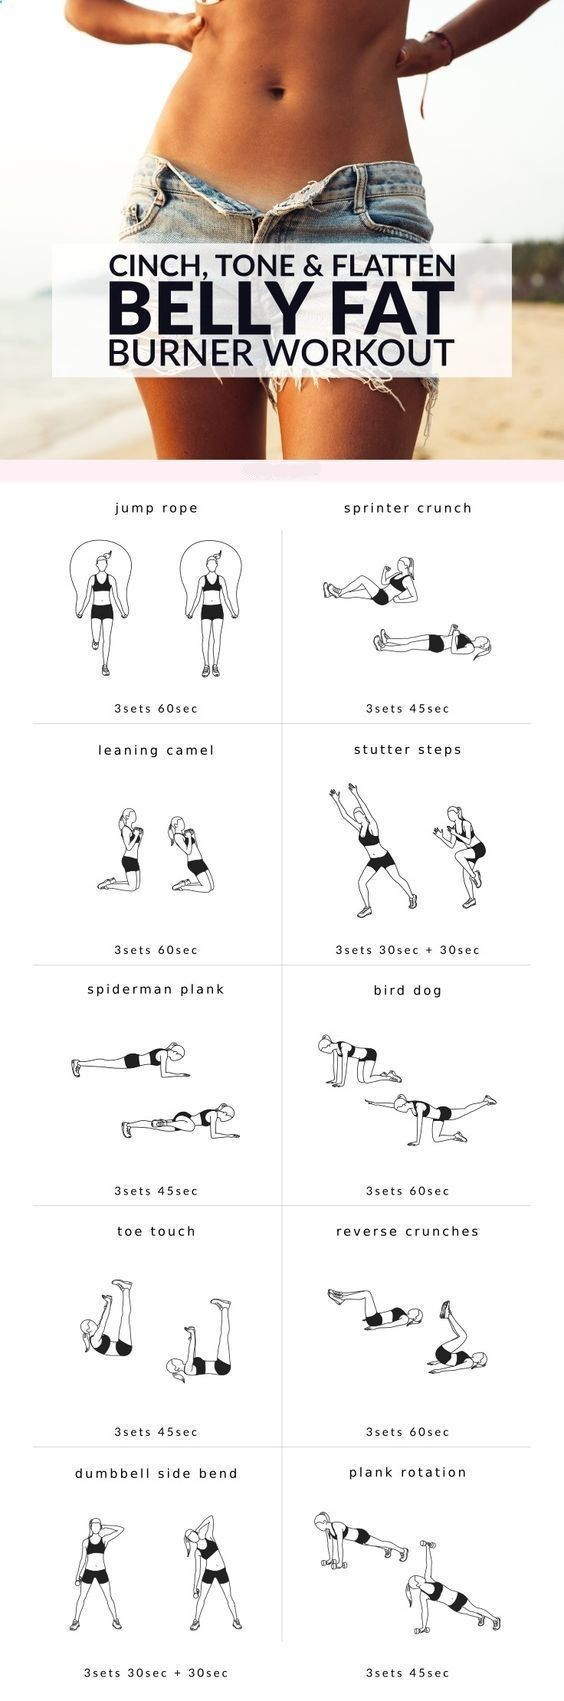 Wont six-pack Abs, gain muscle or weight loss, these workout plan is great for women. with FREE WEEKENDS and No-Gym or equipment ! #weightloss #loseweight #weightlossworkout #absworkout #gainmuscle #workoutforwomen #workoutplan #Fitness #Health https://ww